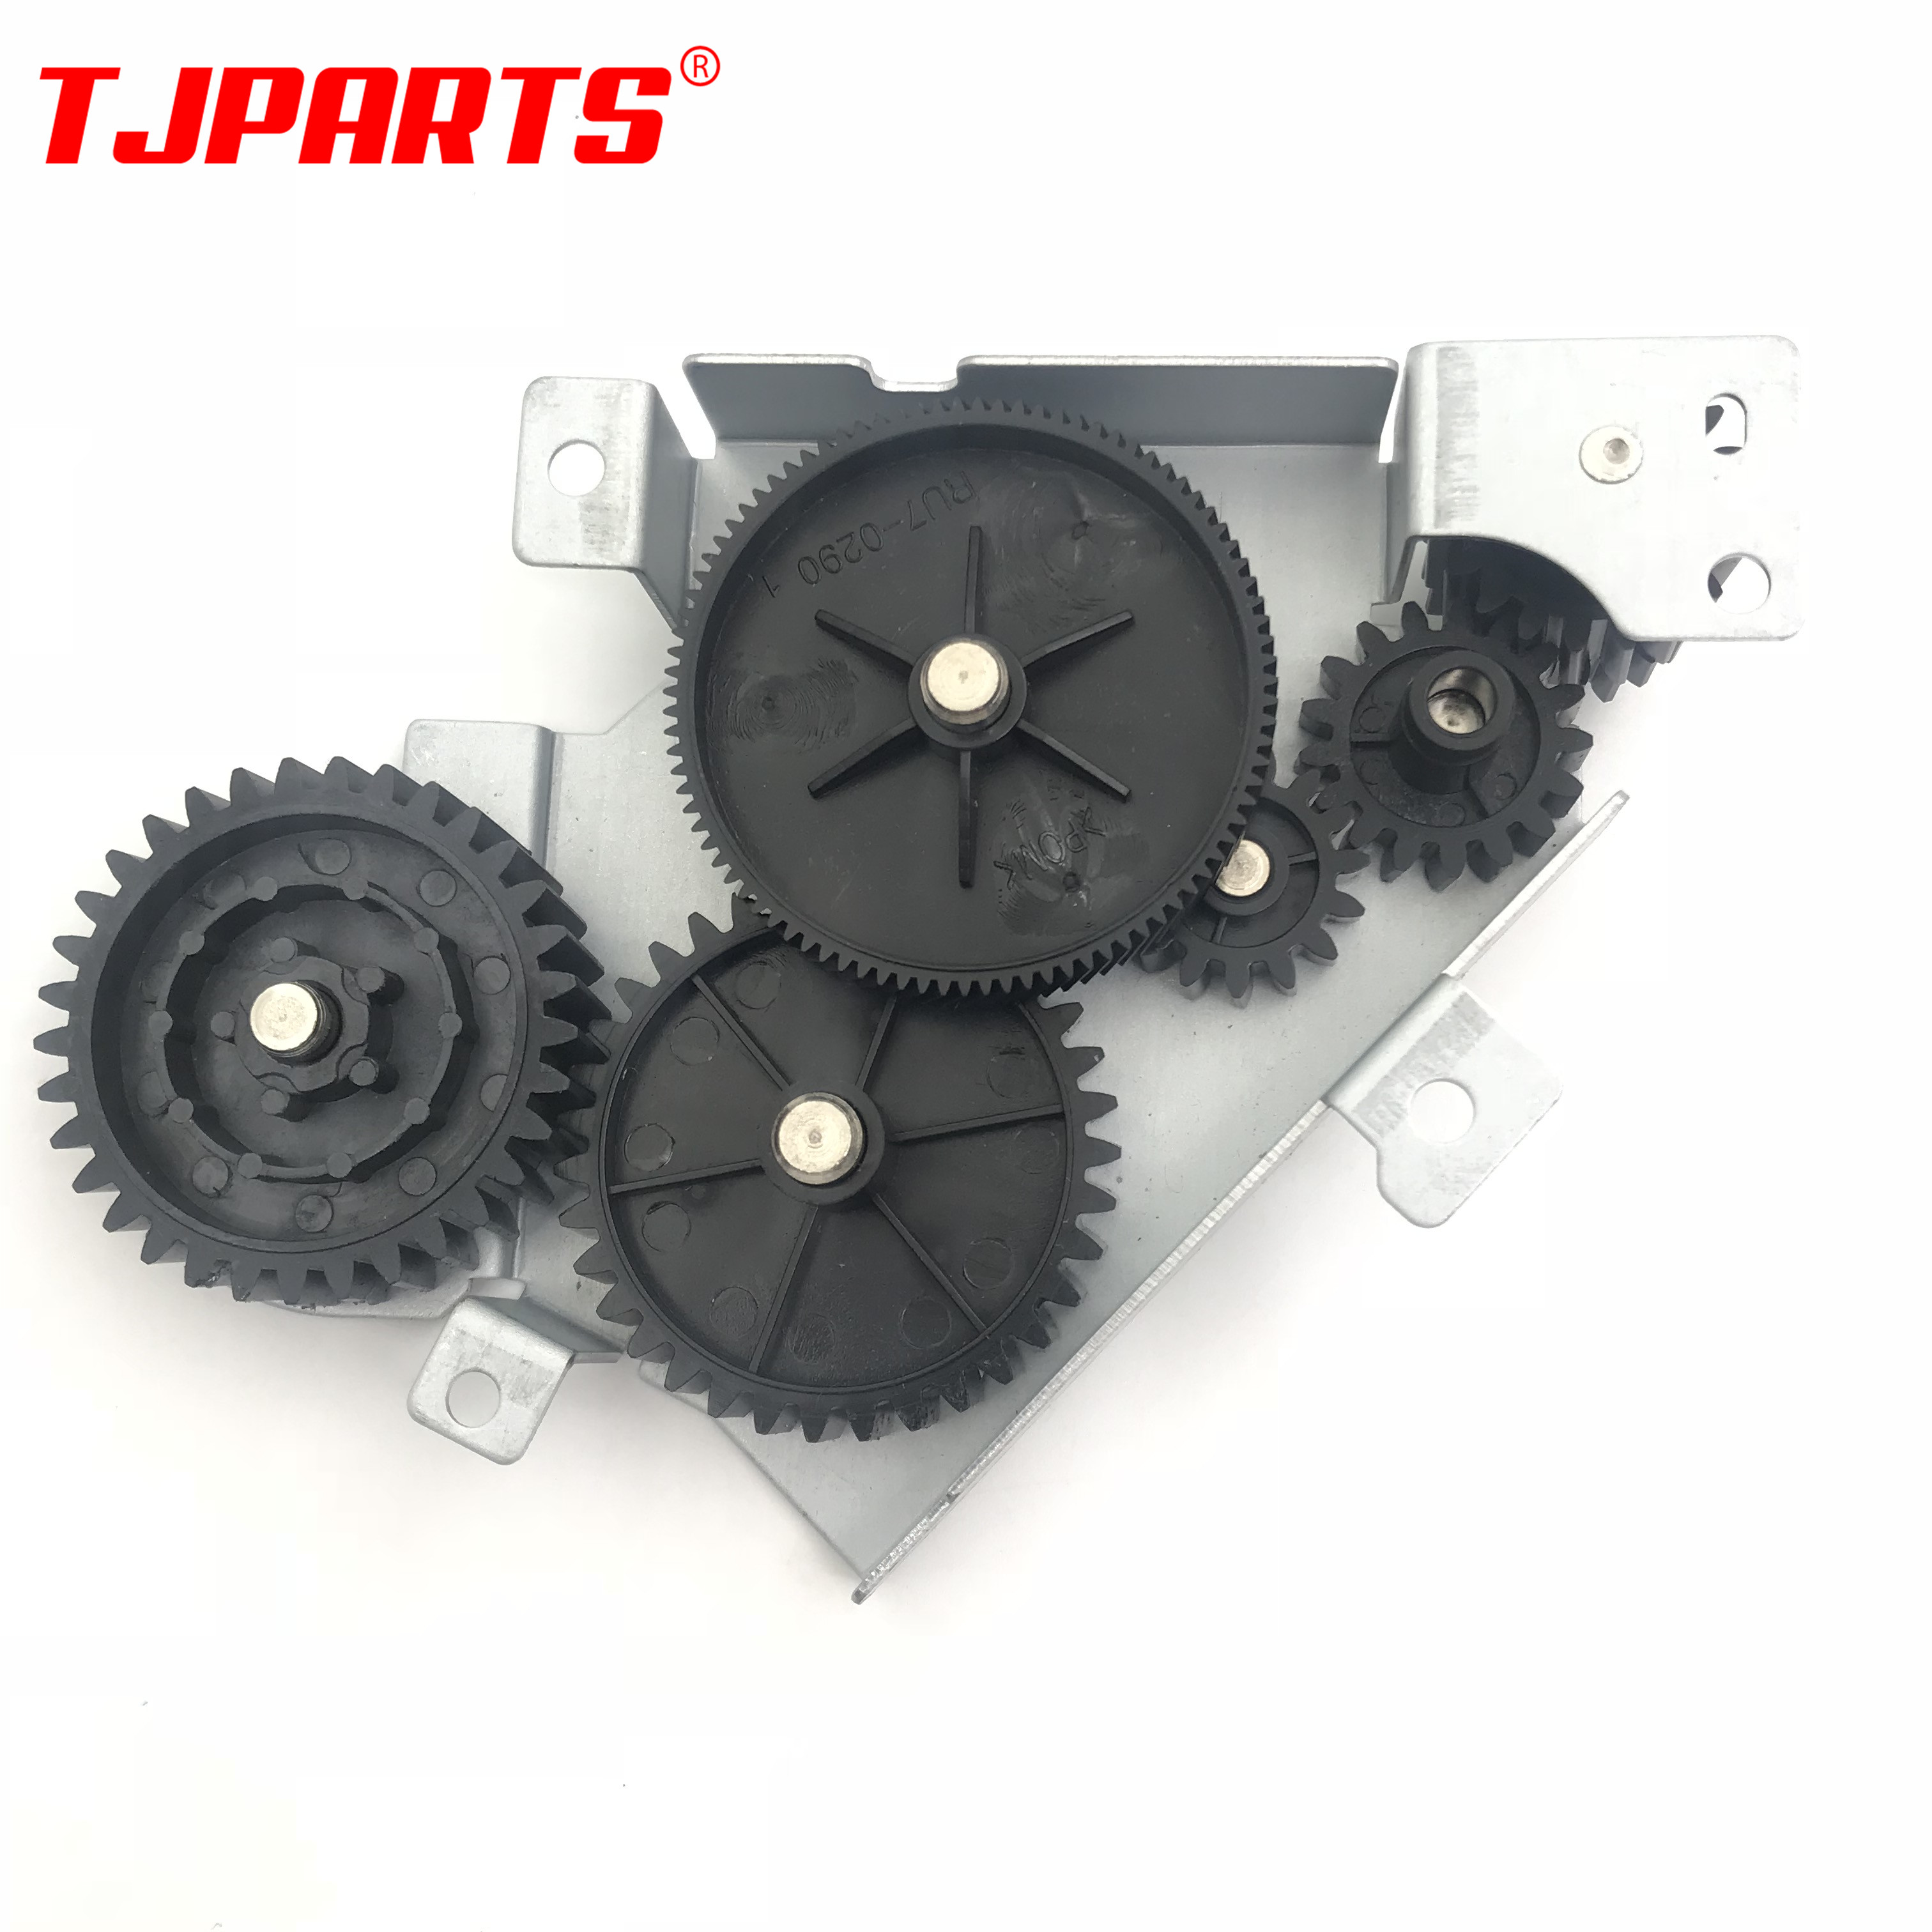 RC2 2432 M601 RC2 2432 M600 Arm Swing Plate Gear Assembly Side Plate Fuser Drive for